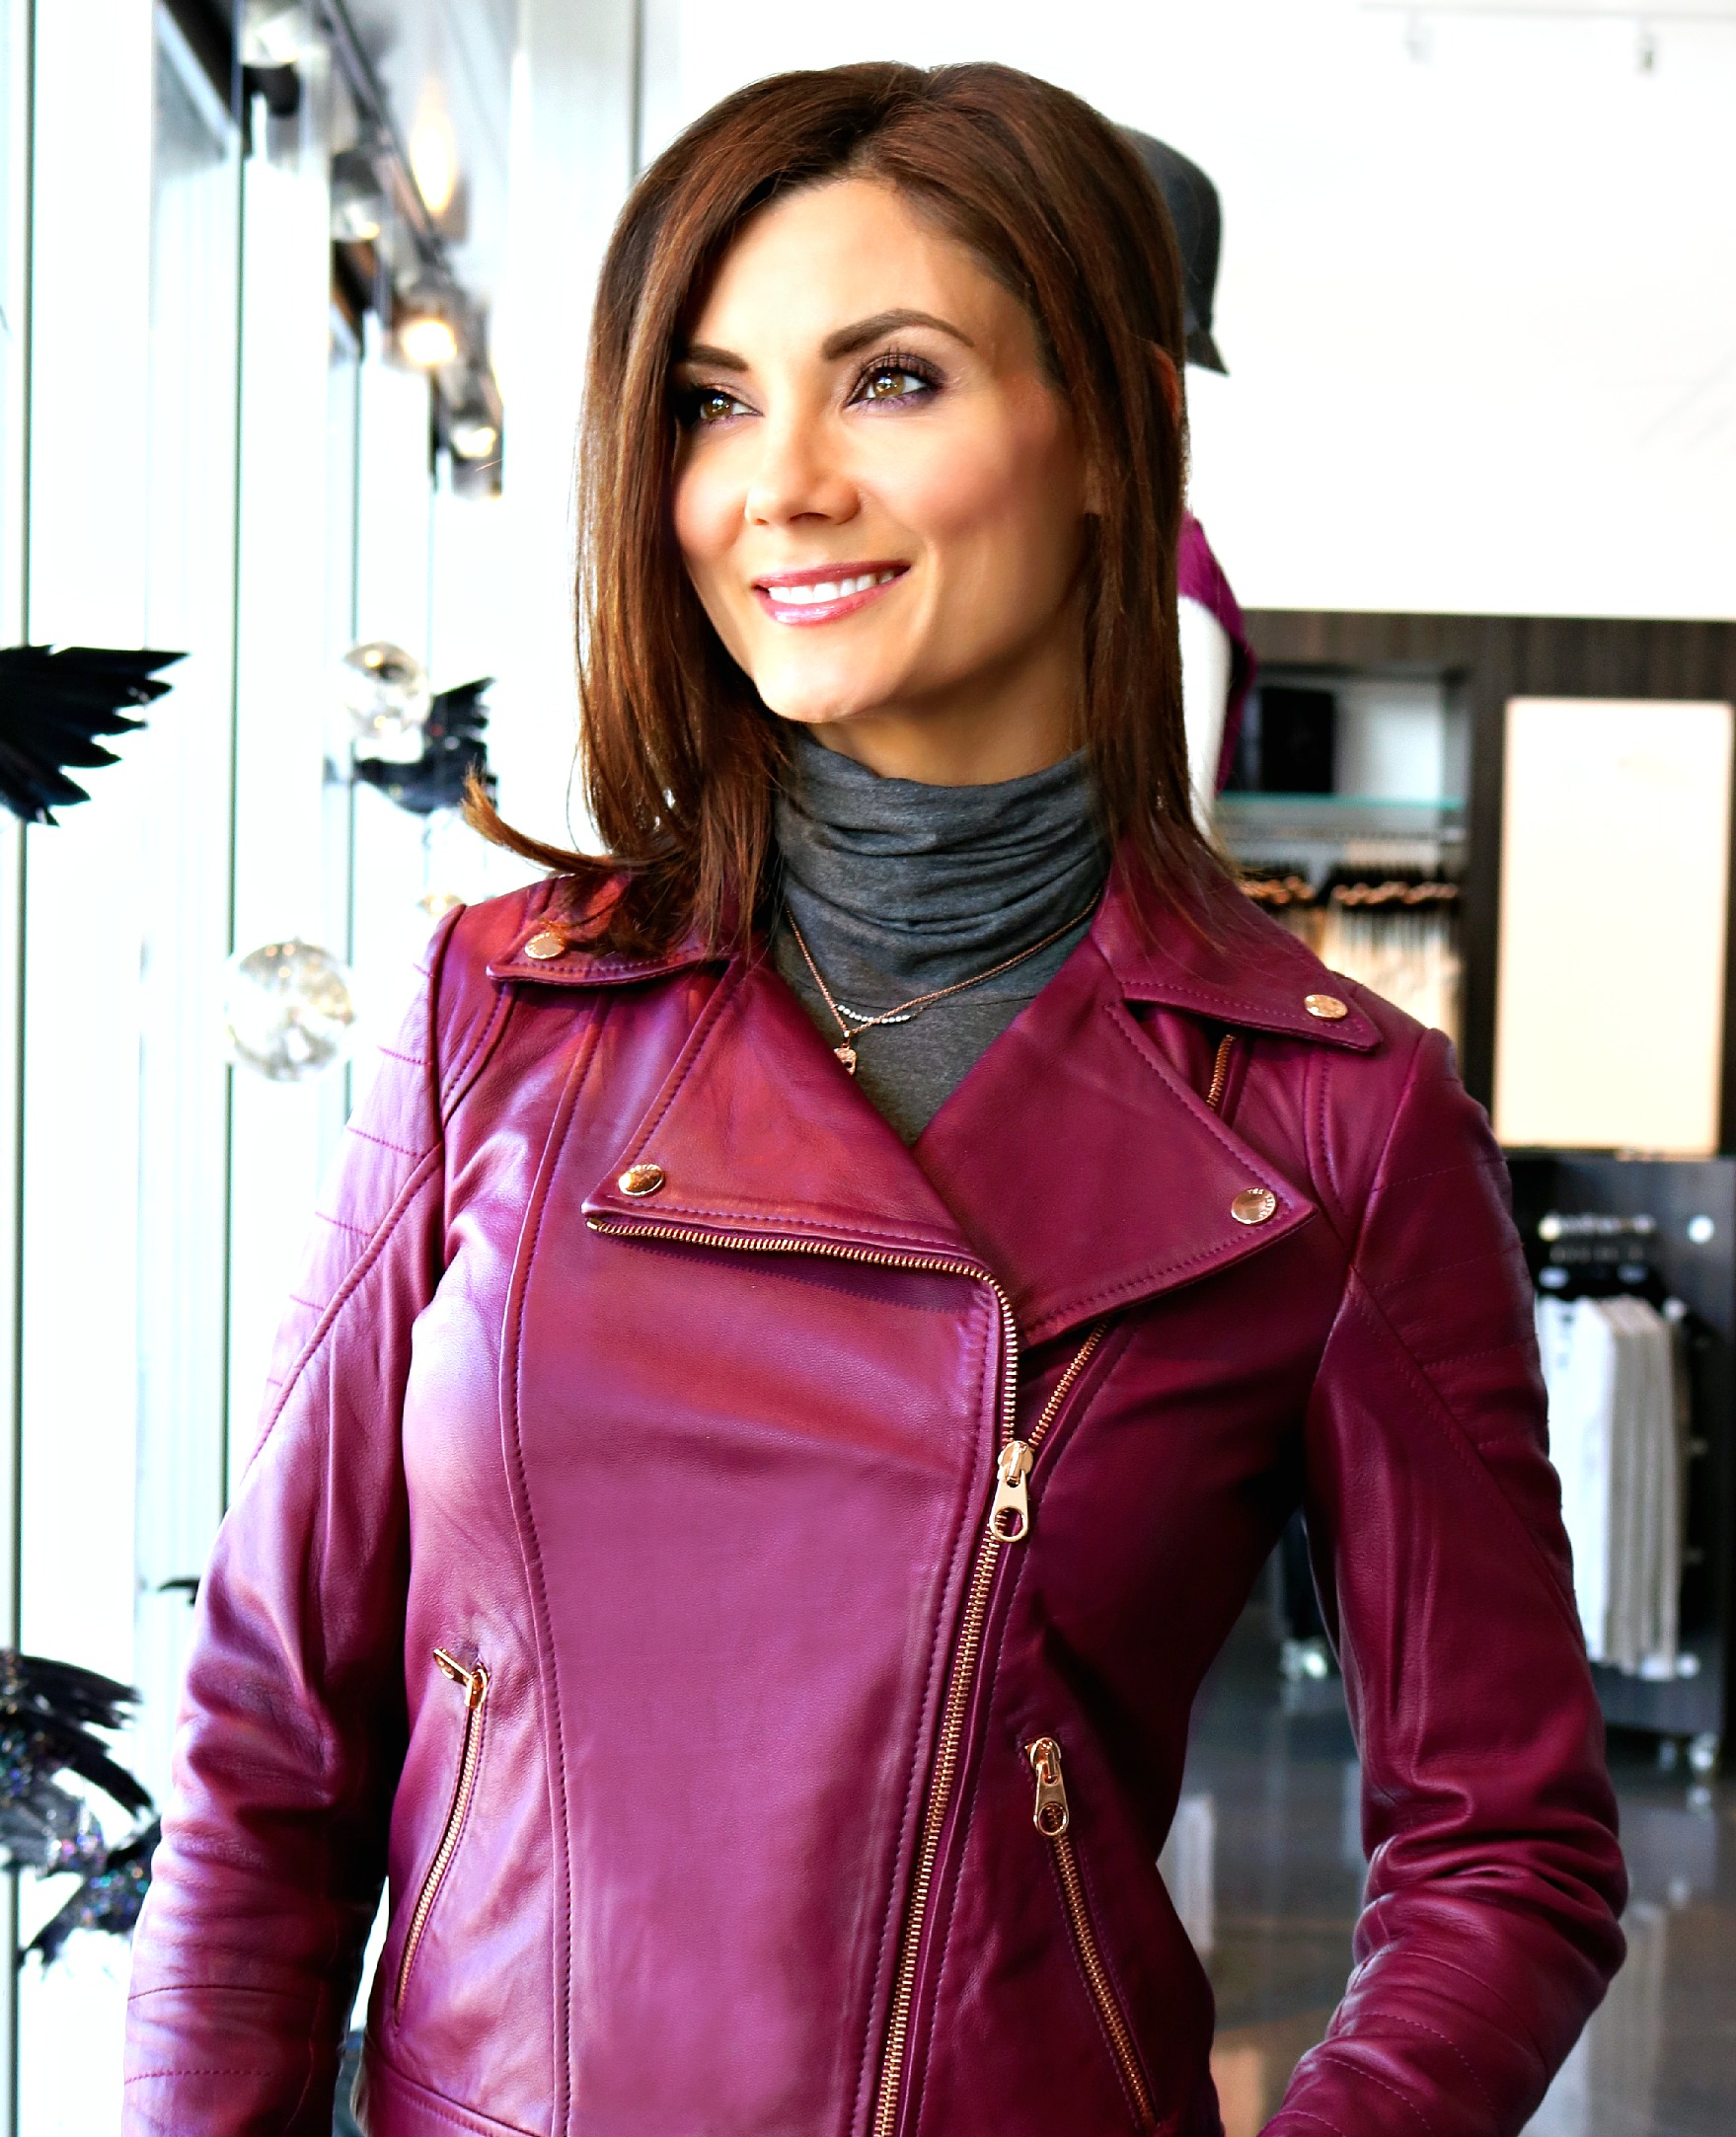 Ted Baker Leather Biker Jacket in Grape Available In Store Only